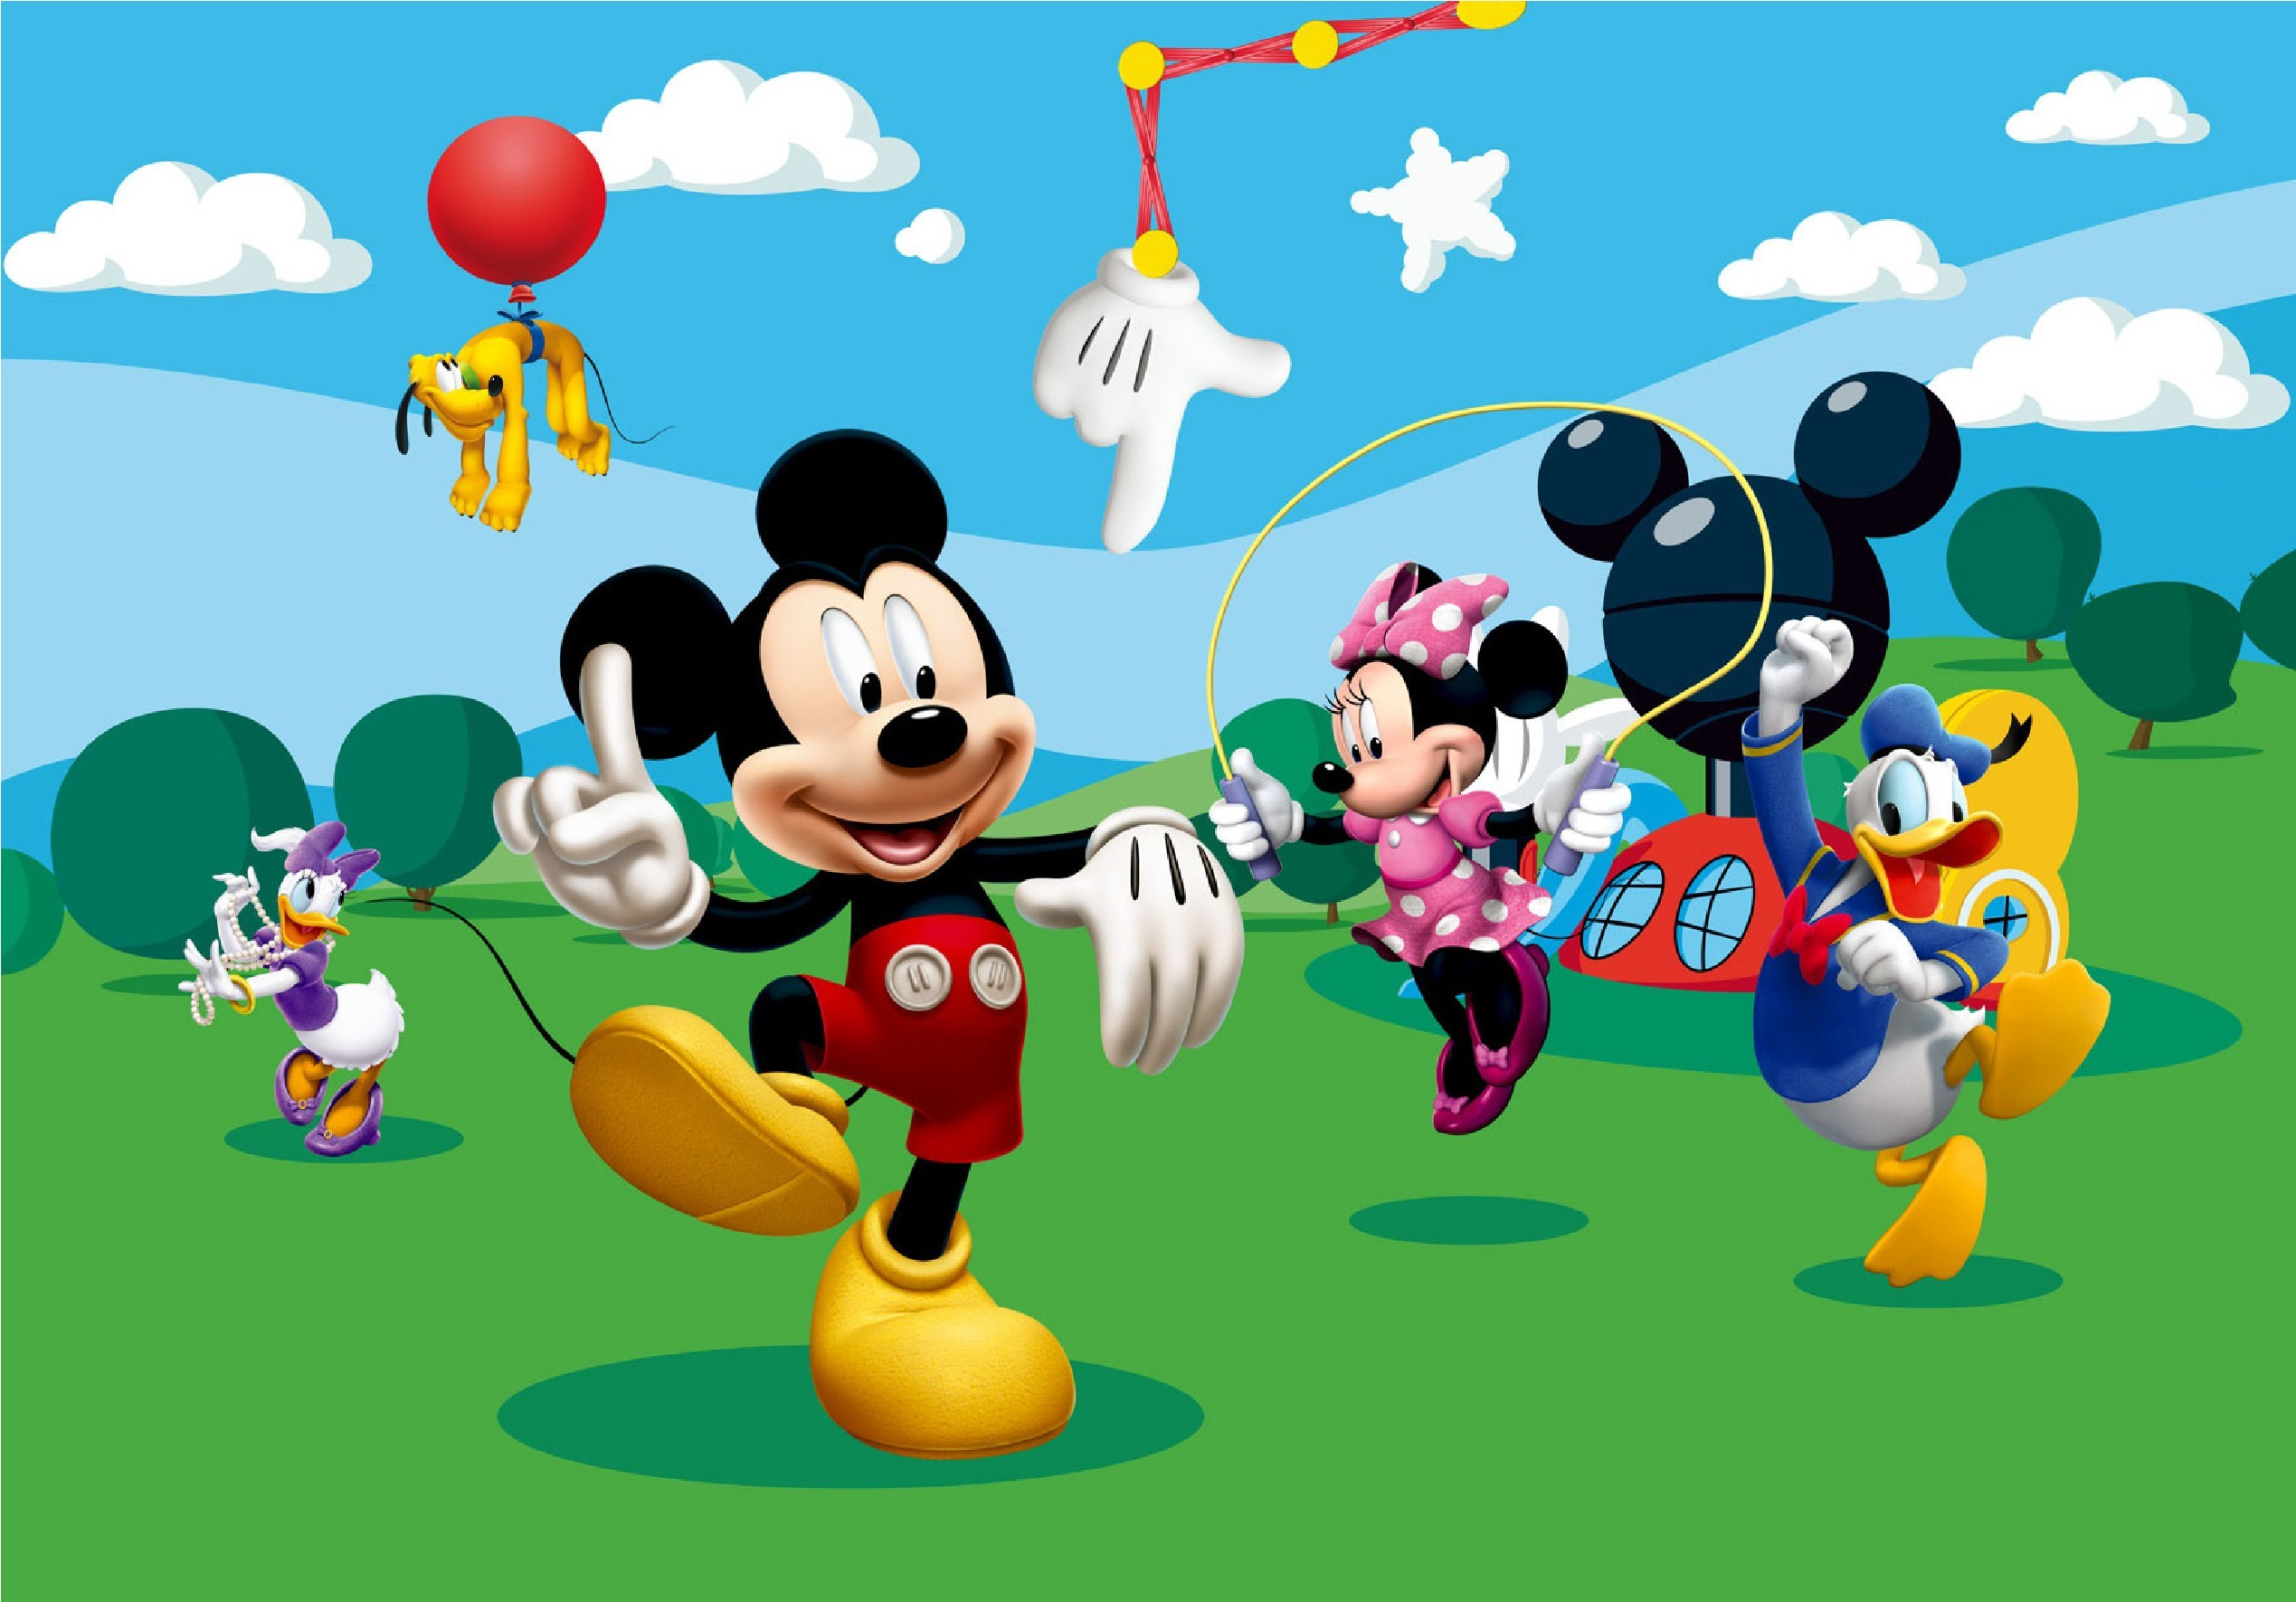 Res: 2538x1771, ... mickey mouse birthday baby wallpaper hd resolution full on cartoon  category similar with .